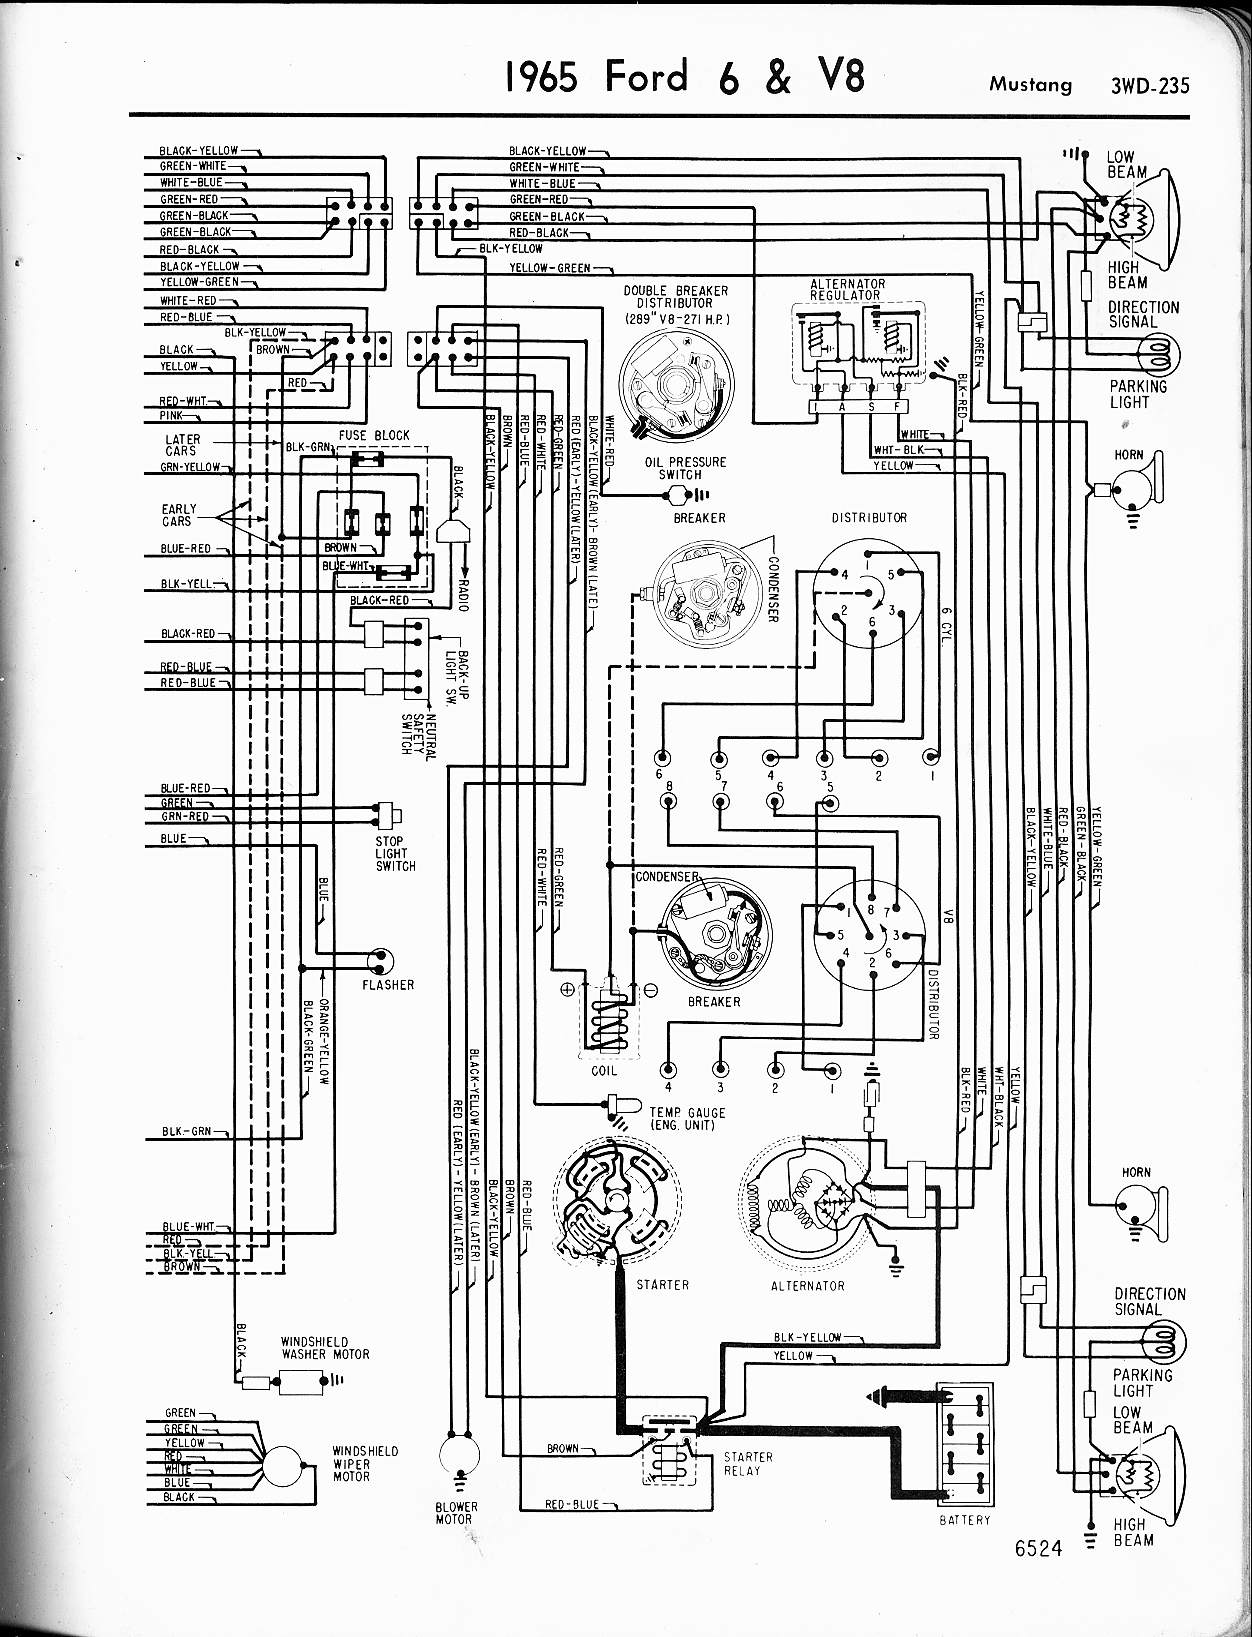 Diagram Denso Wiring 42511 14056 Search For Diagrams Harness 99 Mustang Rh Ashleylauren Co Pinto Alternator